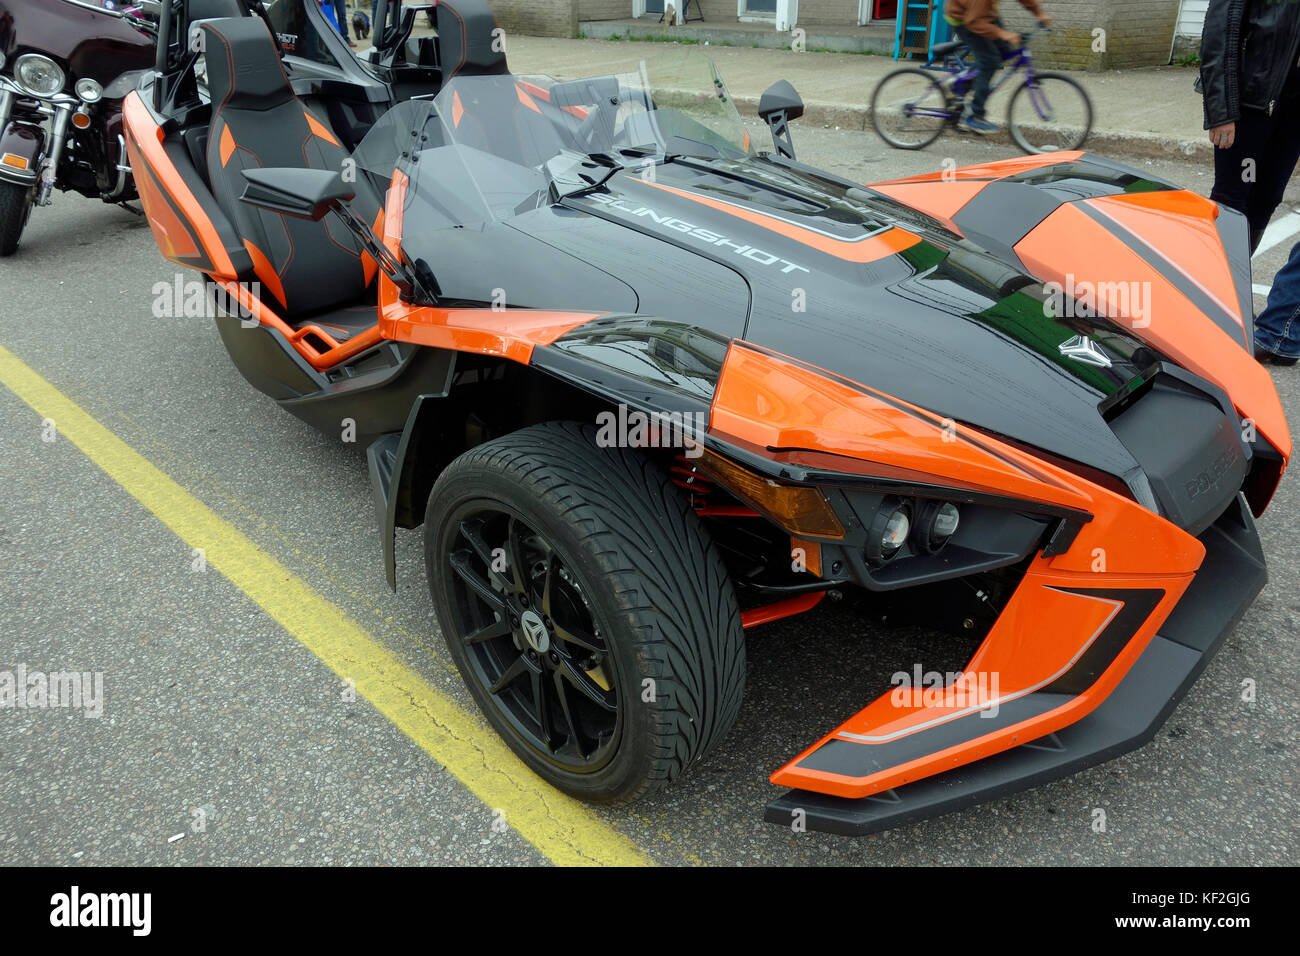 ein polaris slingshot 3 rad motorrad automobil autocycle. Black Bedroom Furniture Sets. Home Design Ideas